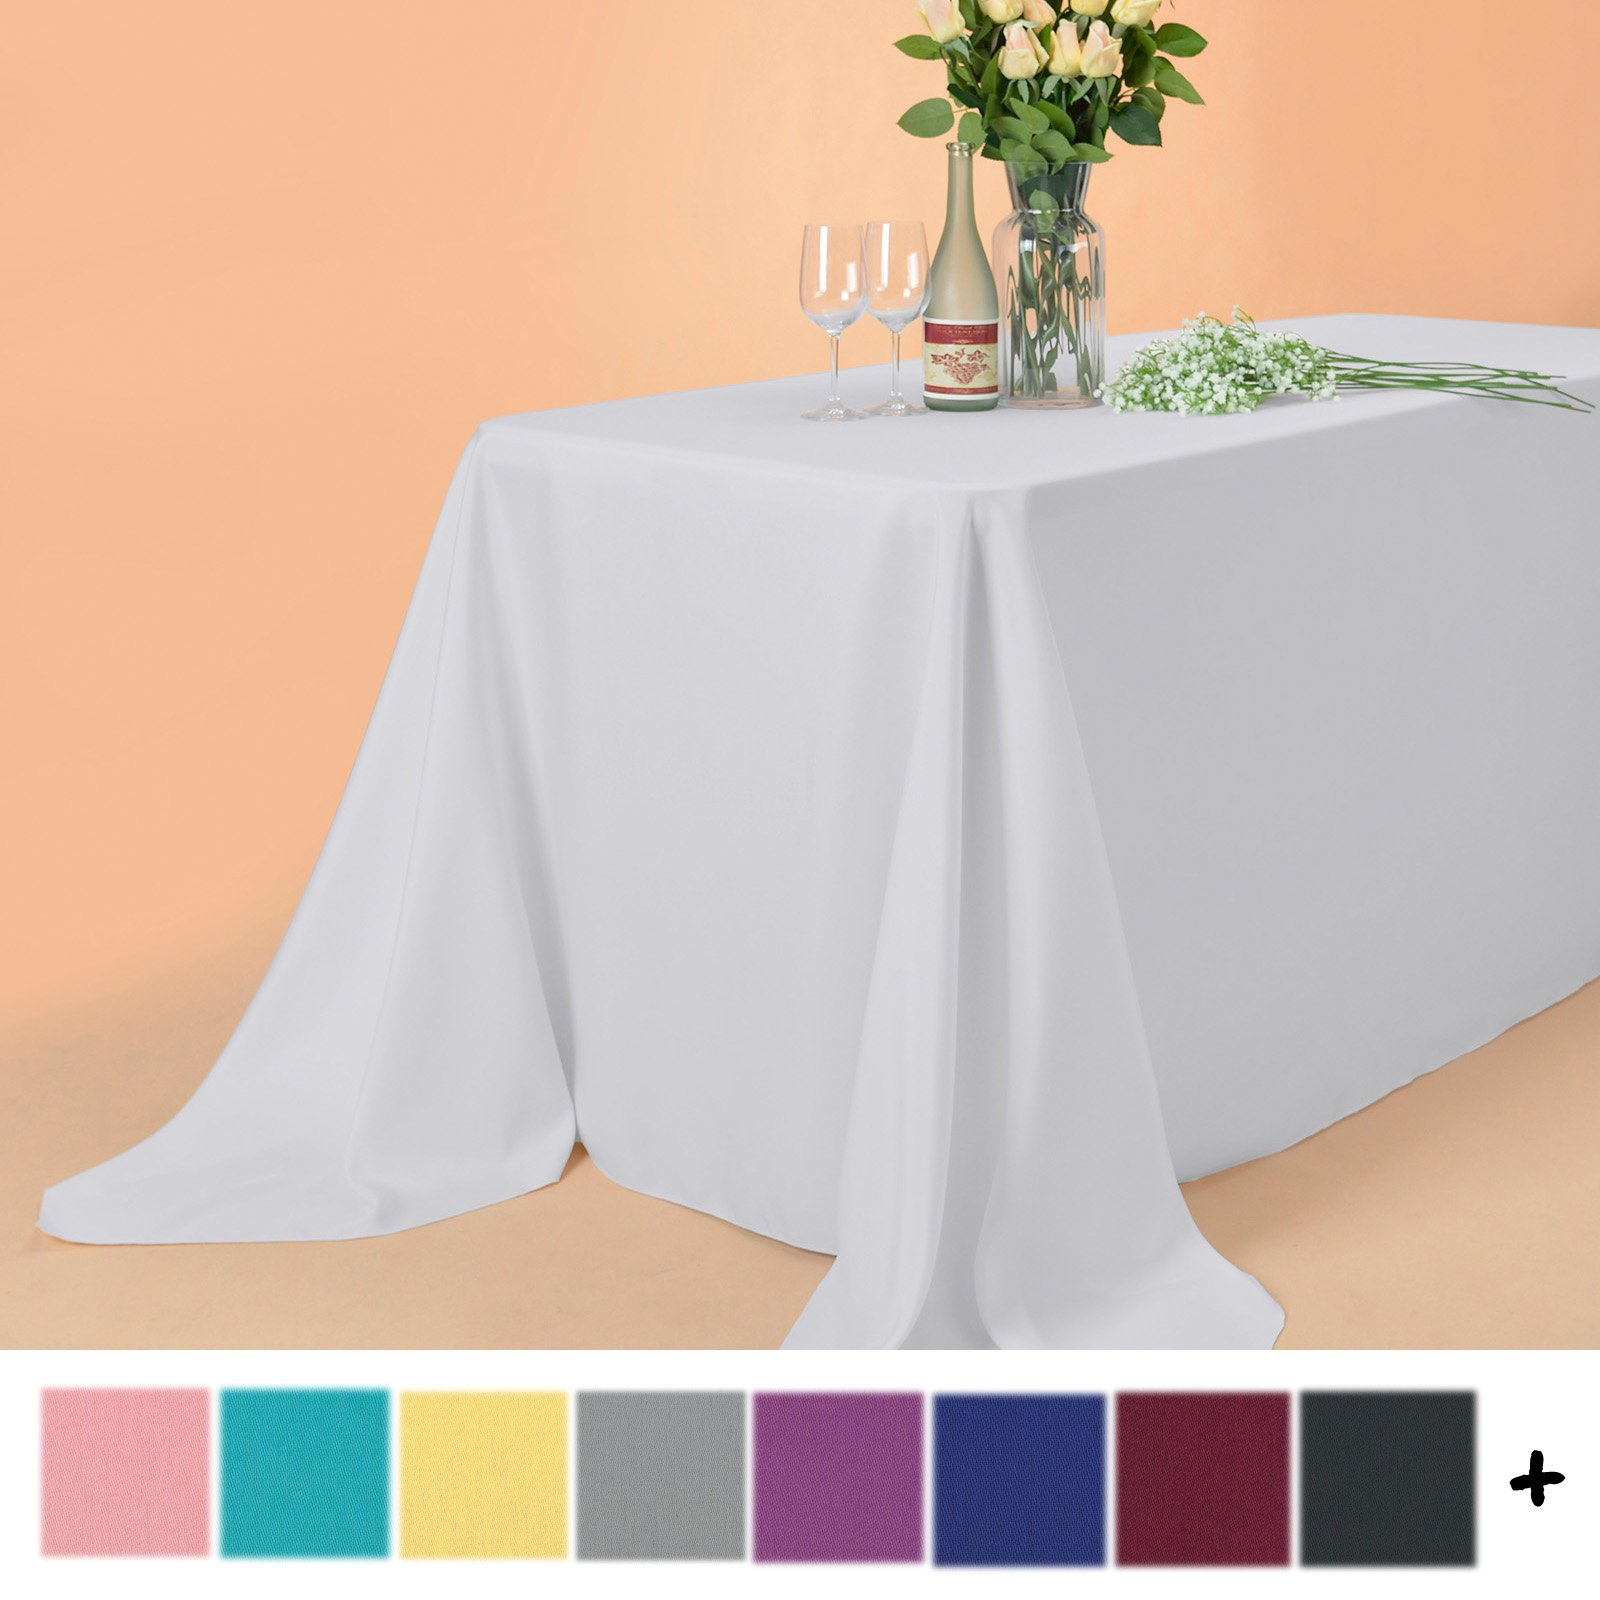 Remedios 90 x 132-inch Rectangle Polyester Tablecloth Table Cover - Wedding Restaurant Party Banquet Decoration, White